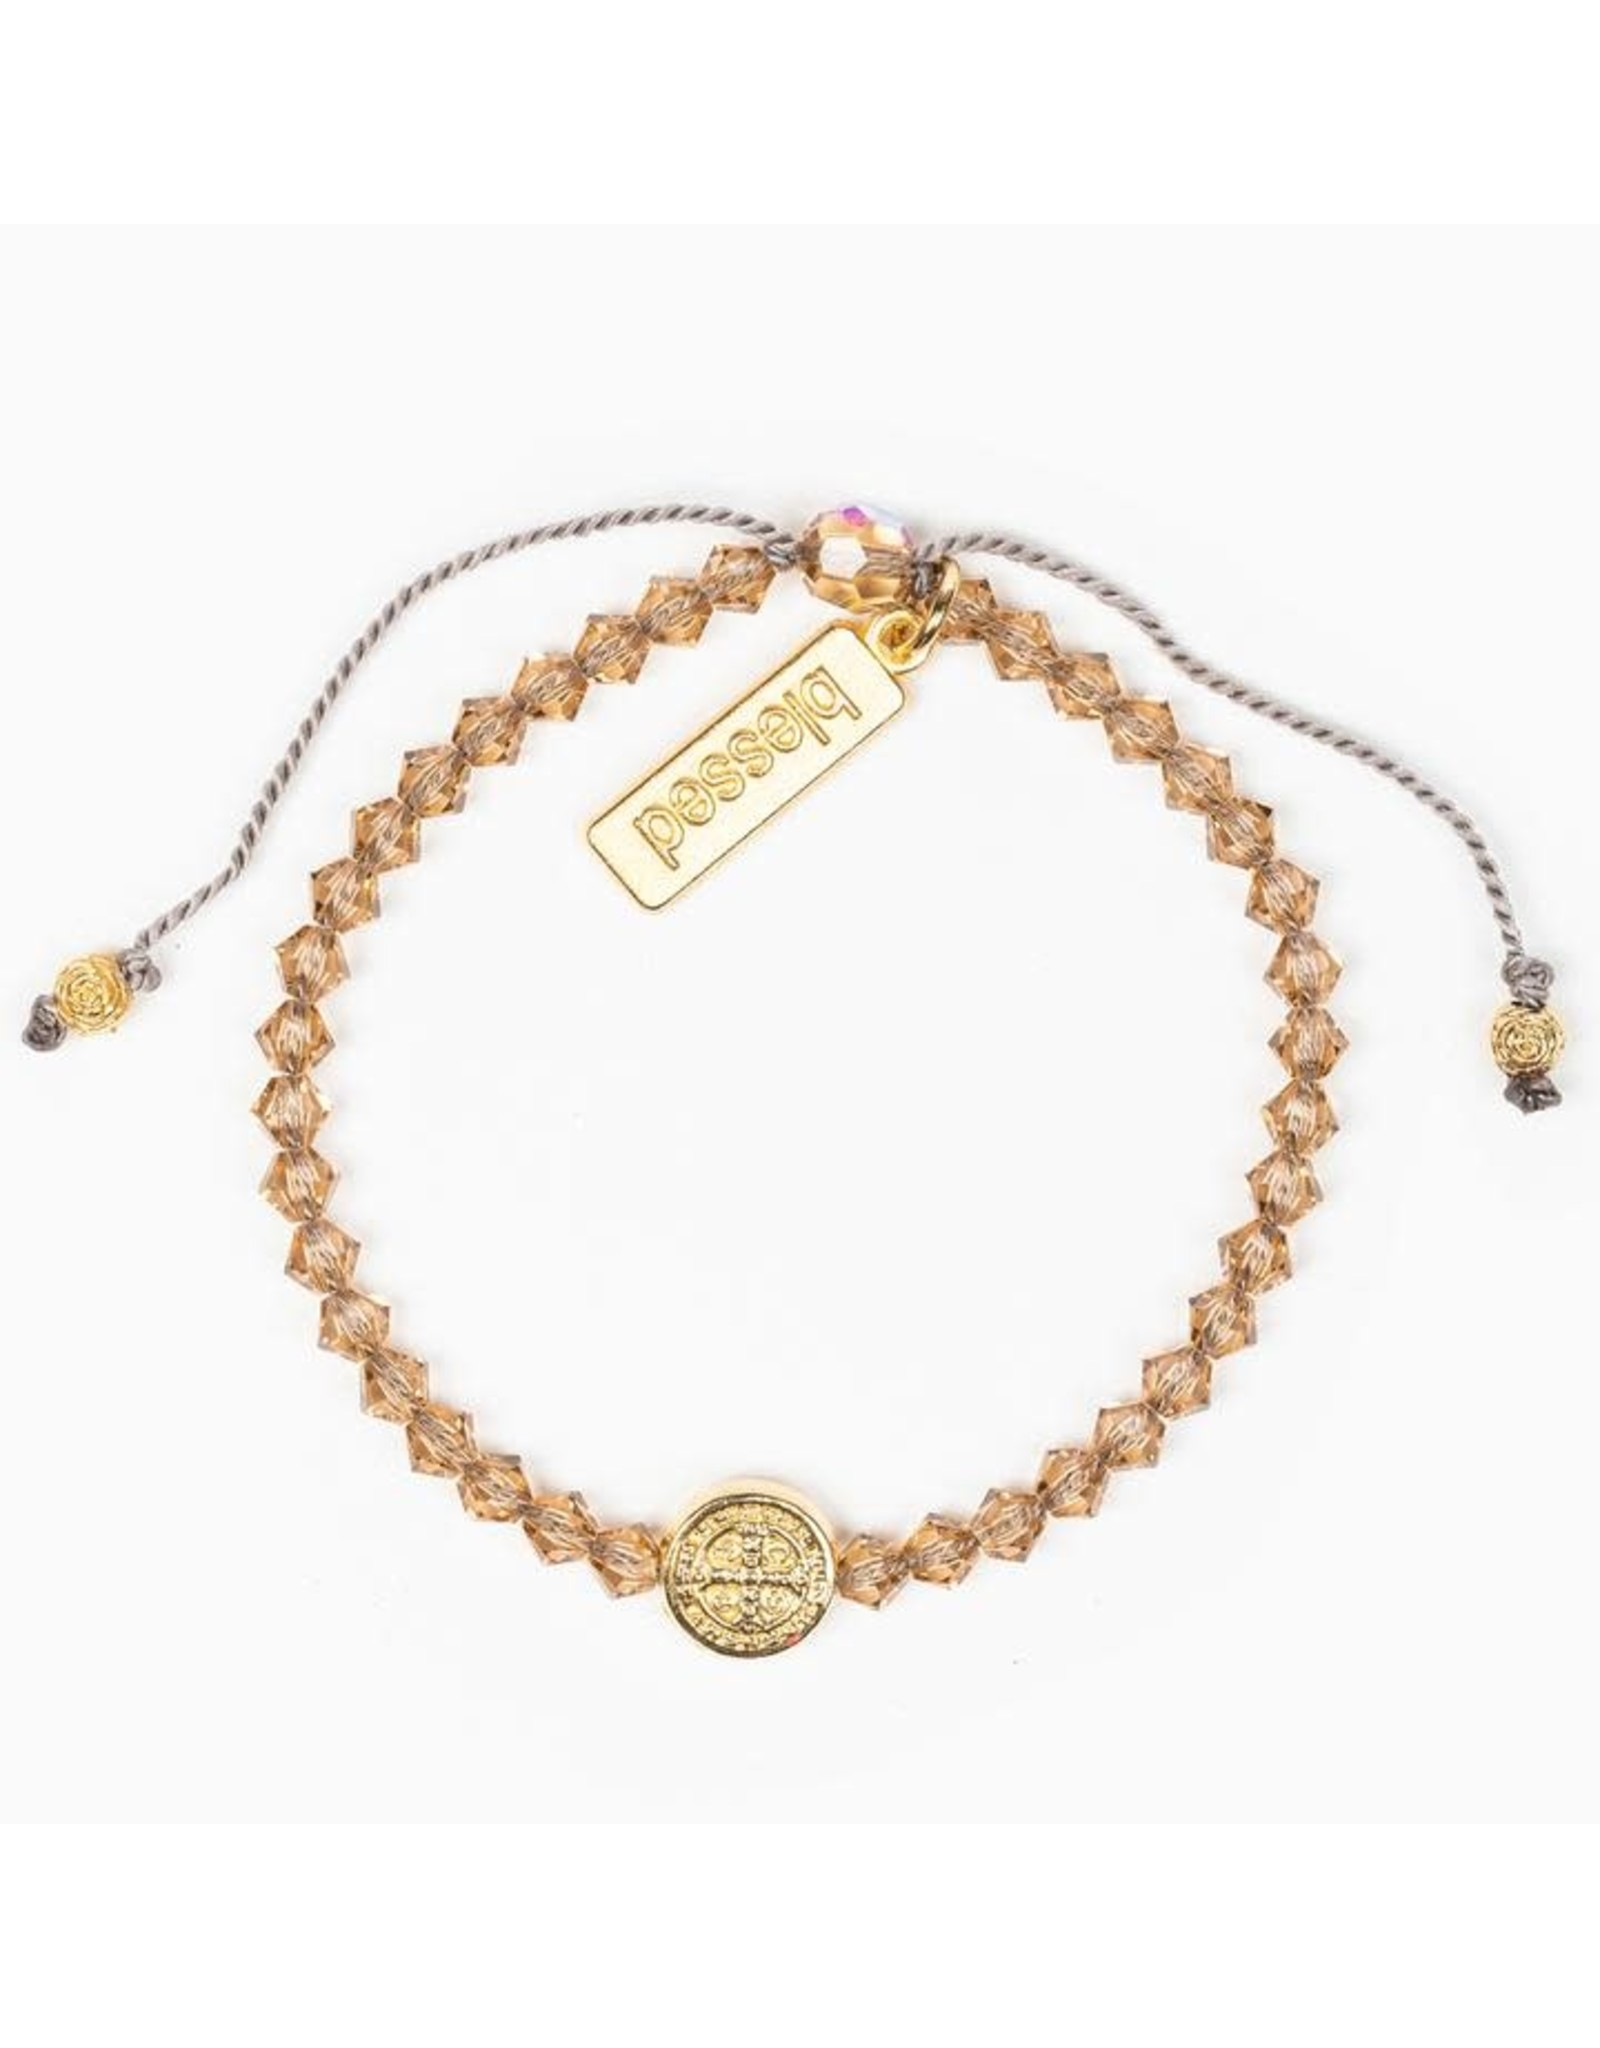 MSMH Birthday Blessing Bracelet- November Gold